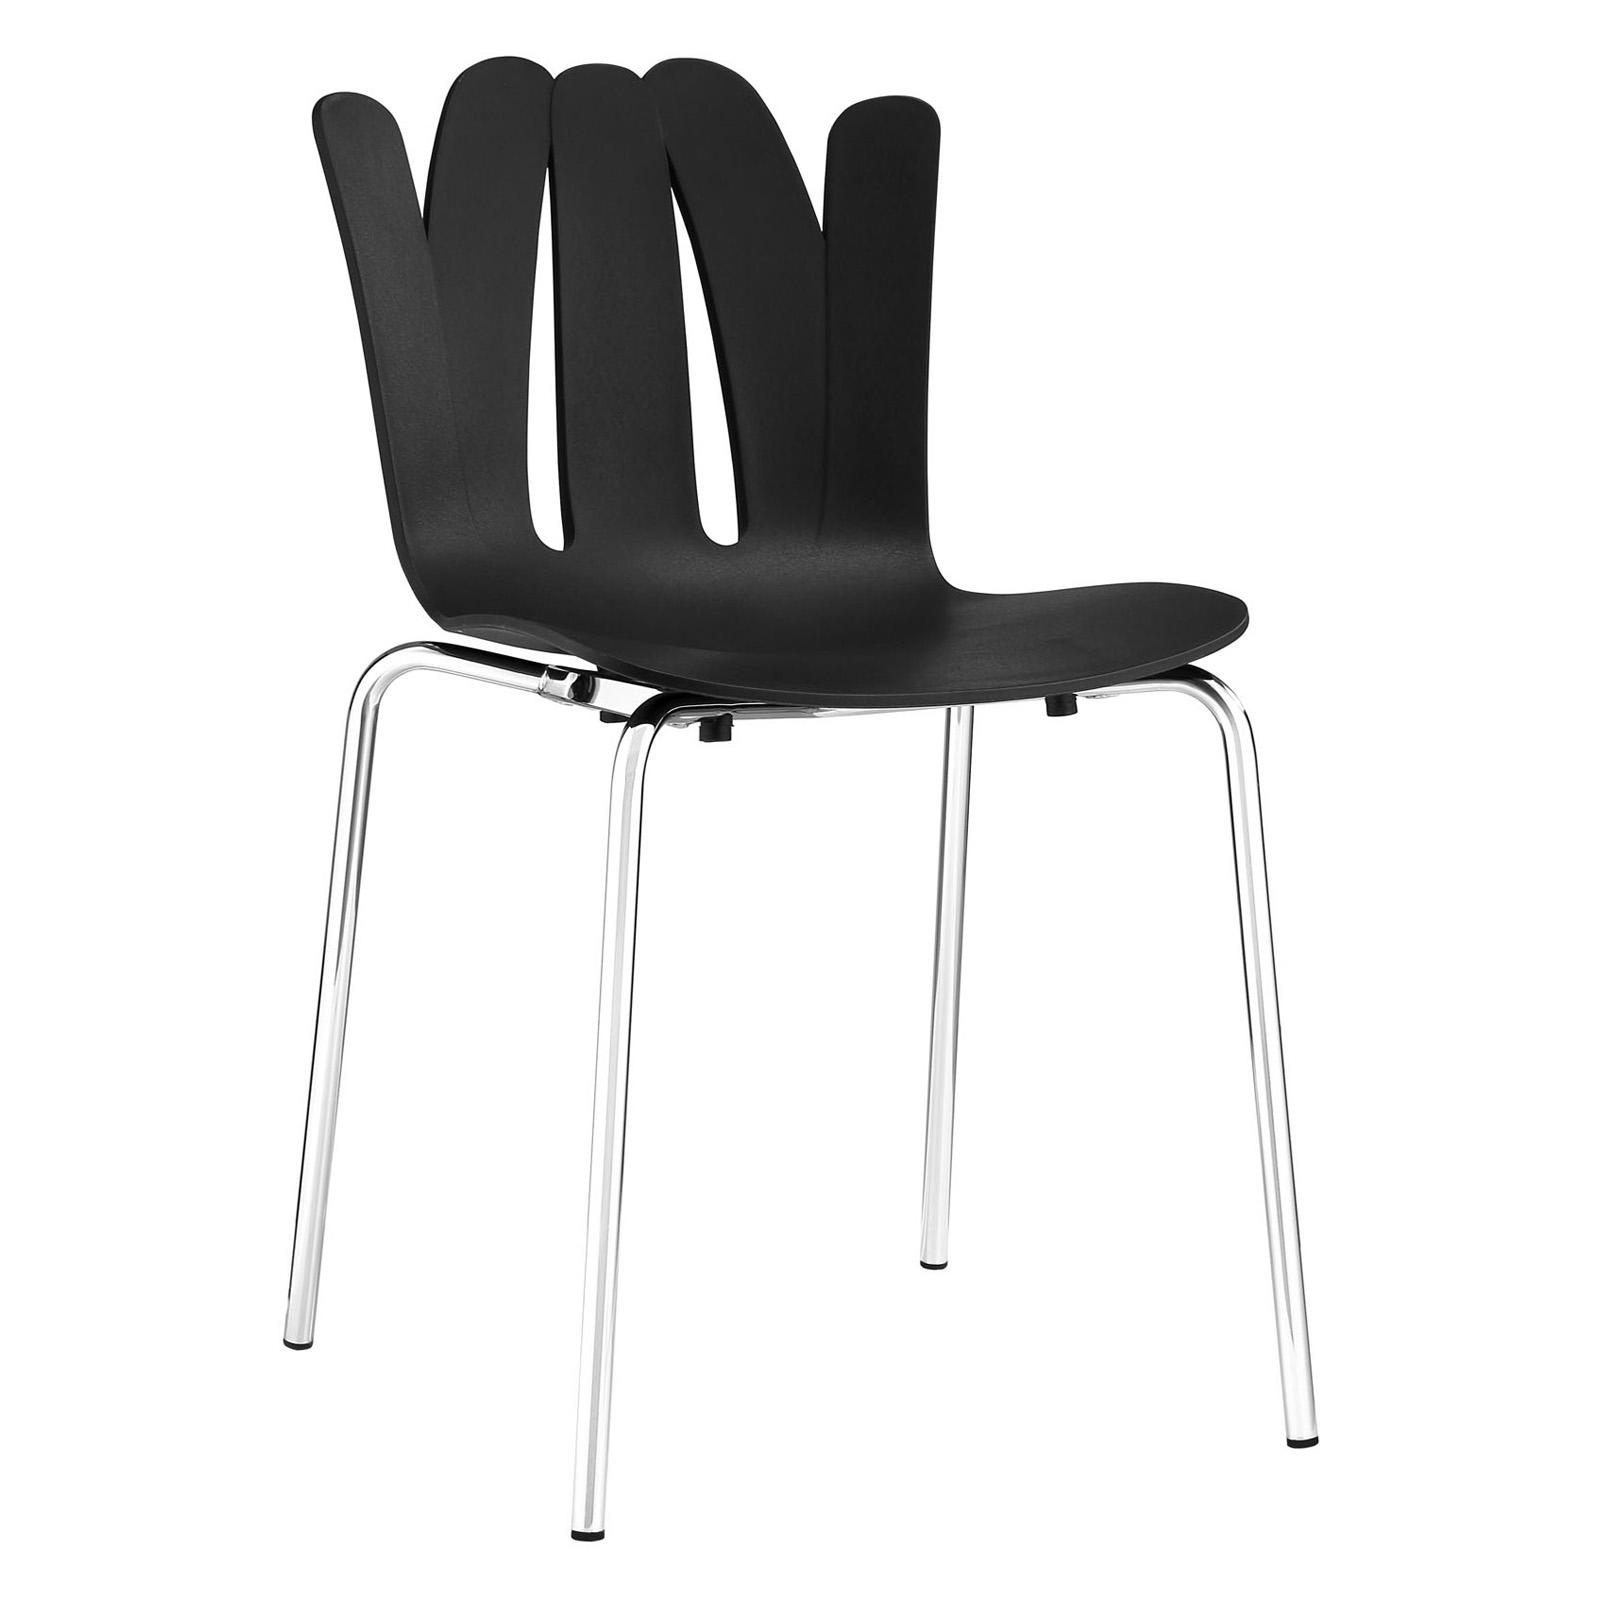 Modway Flare Dining Side Chair Black - EEI-1496-BLK